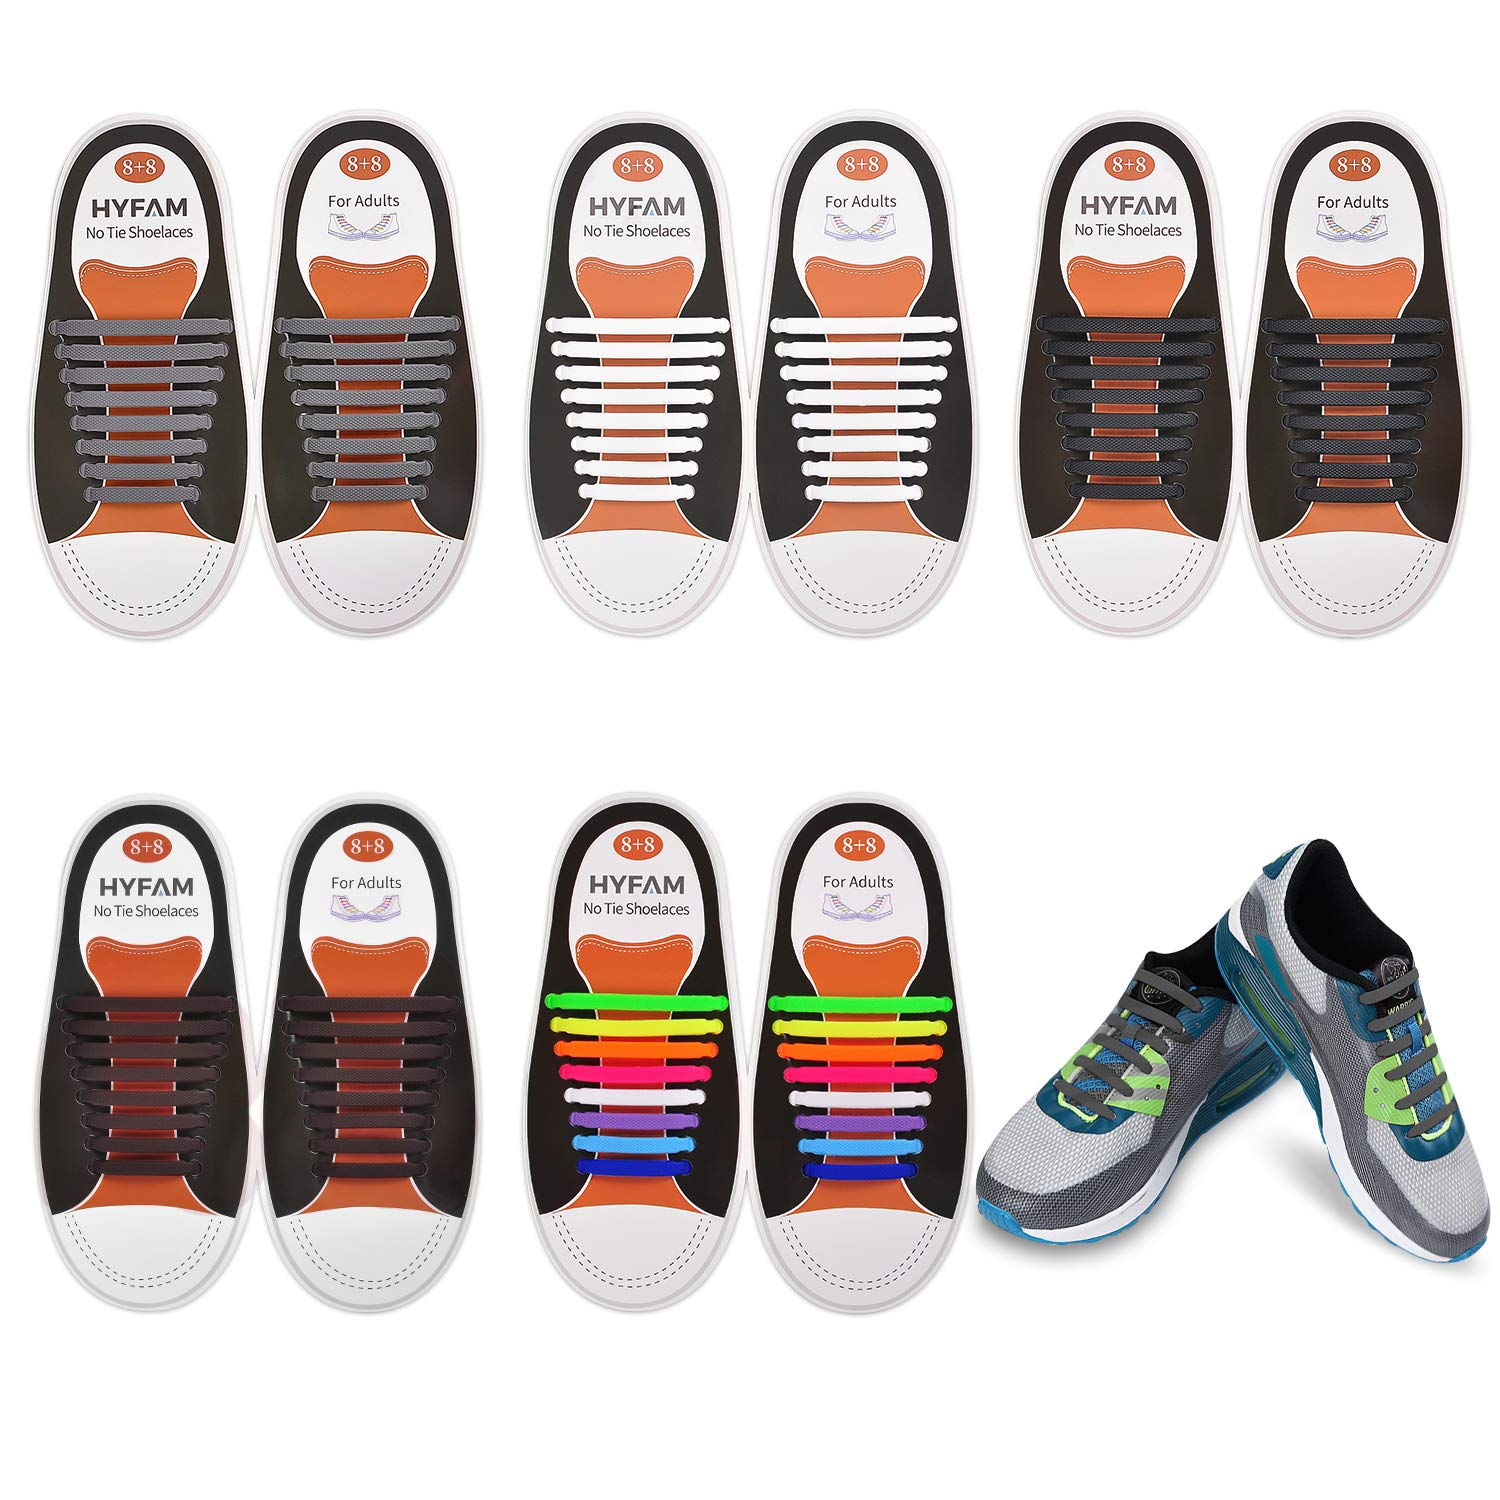 7a0a95a86b0f7 HYFAM No Tie Shoelaces for Kids/Adults, Waterproof Elastic Silicone Tieless  Shoe Laces for Sneakers Board Shoes Casual Shoes